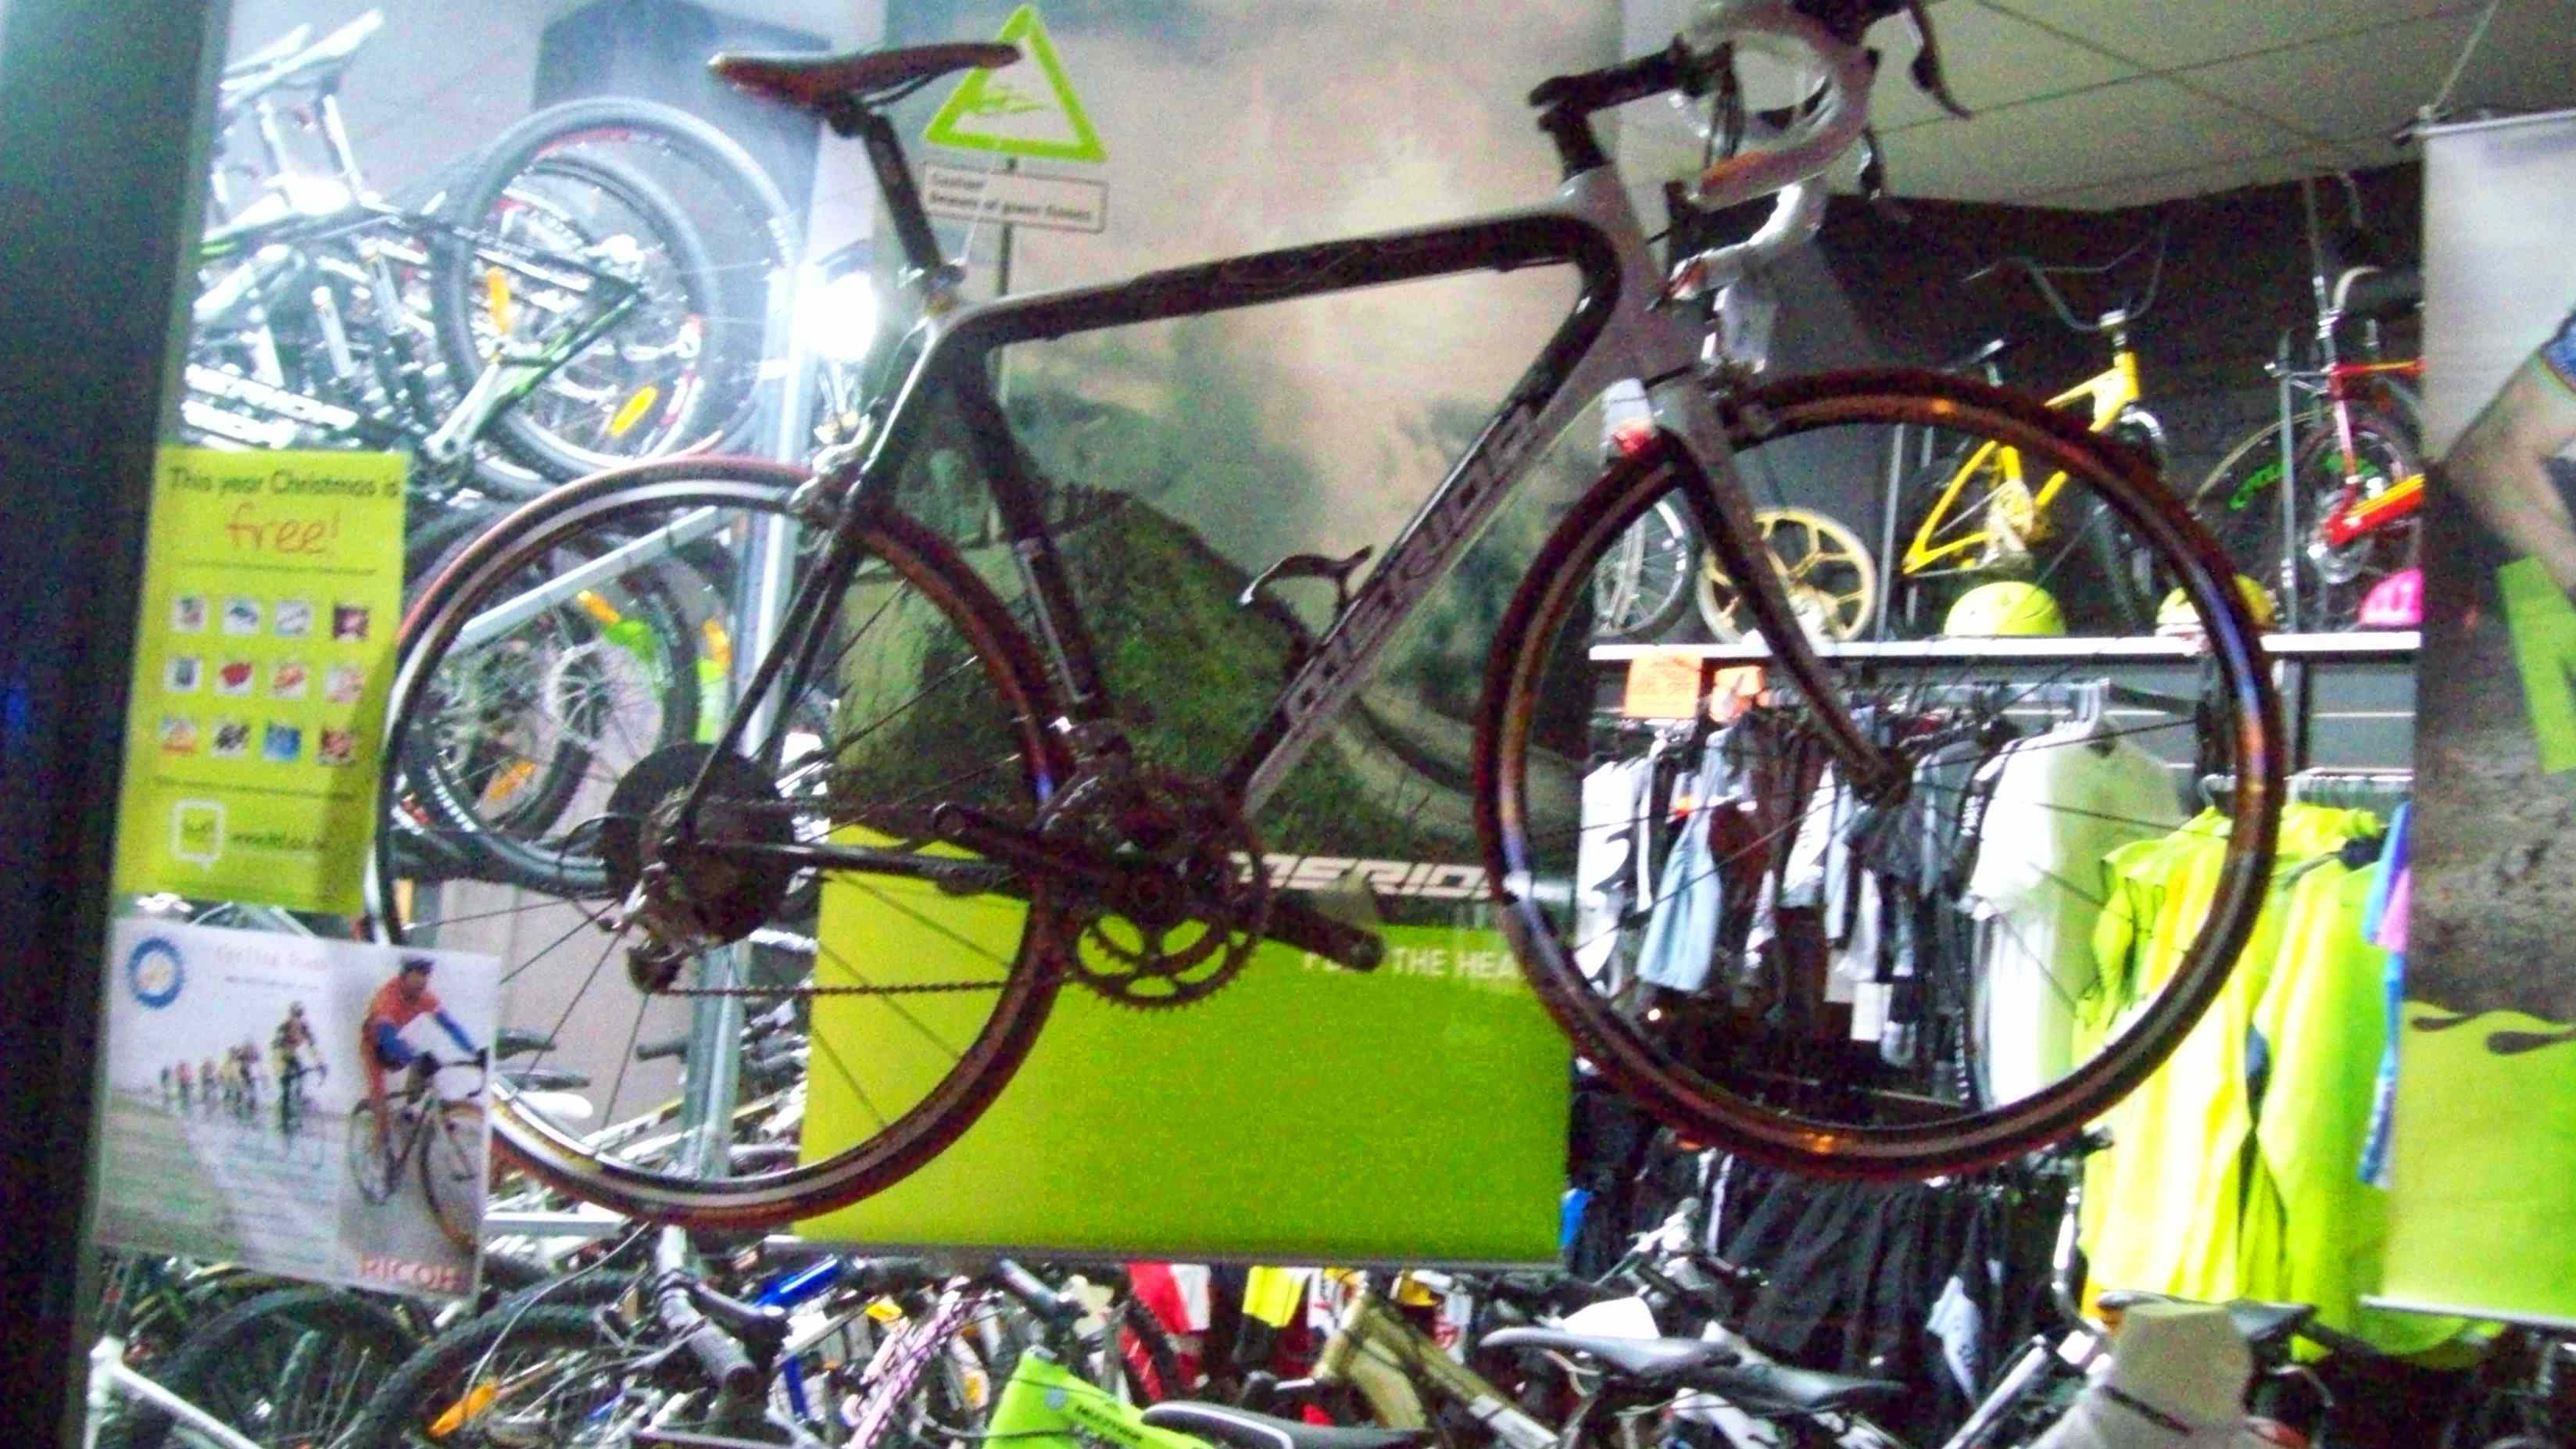 Bikes Retail, Bicycle, Race, Trial, Transport, HQ Photo